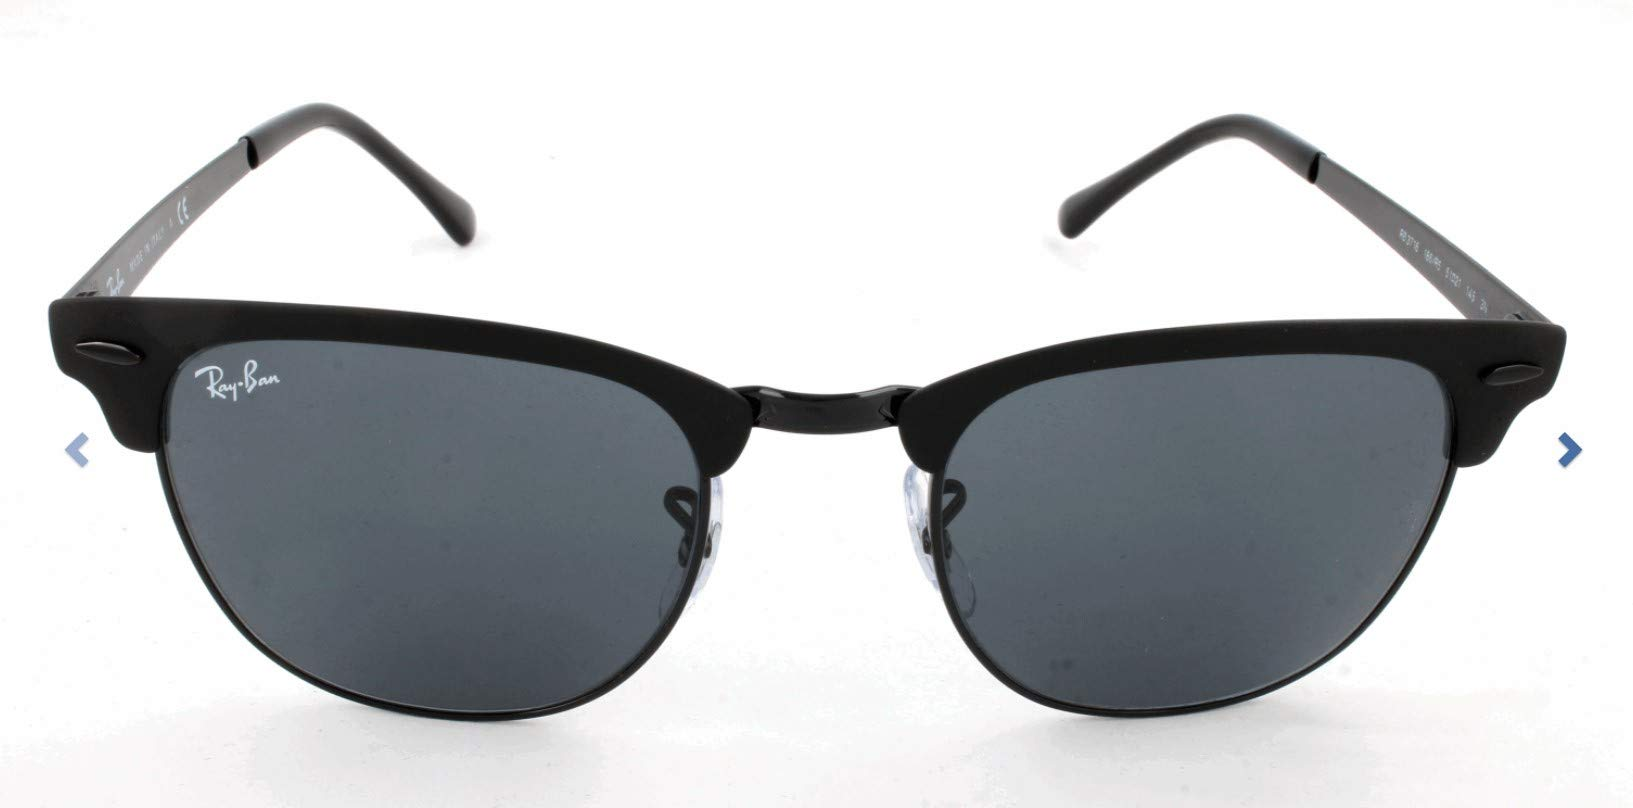 Ray-Ban RB3716 Clubmaster Metal Square Sunglasses, Black On Matte Black/Blue, 51 mm